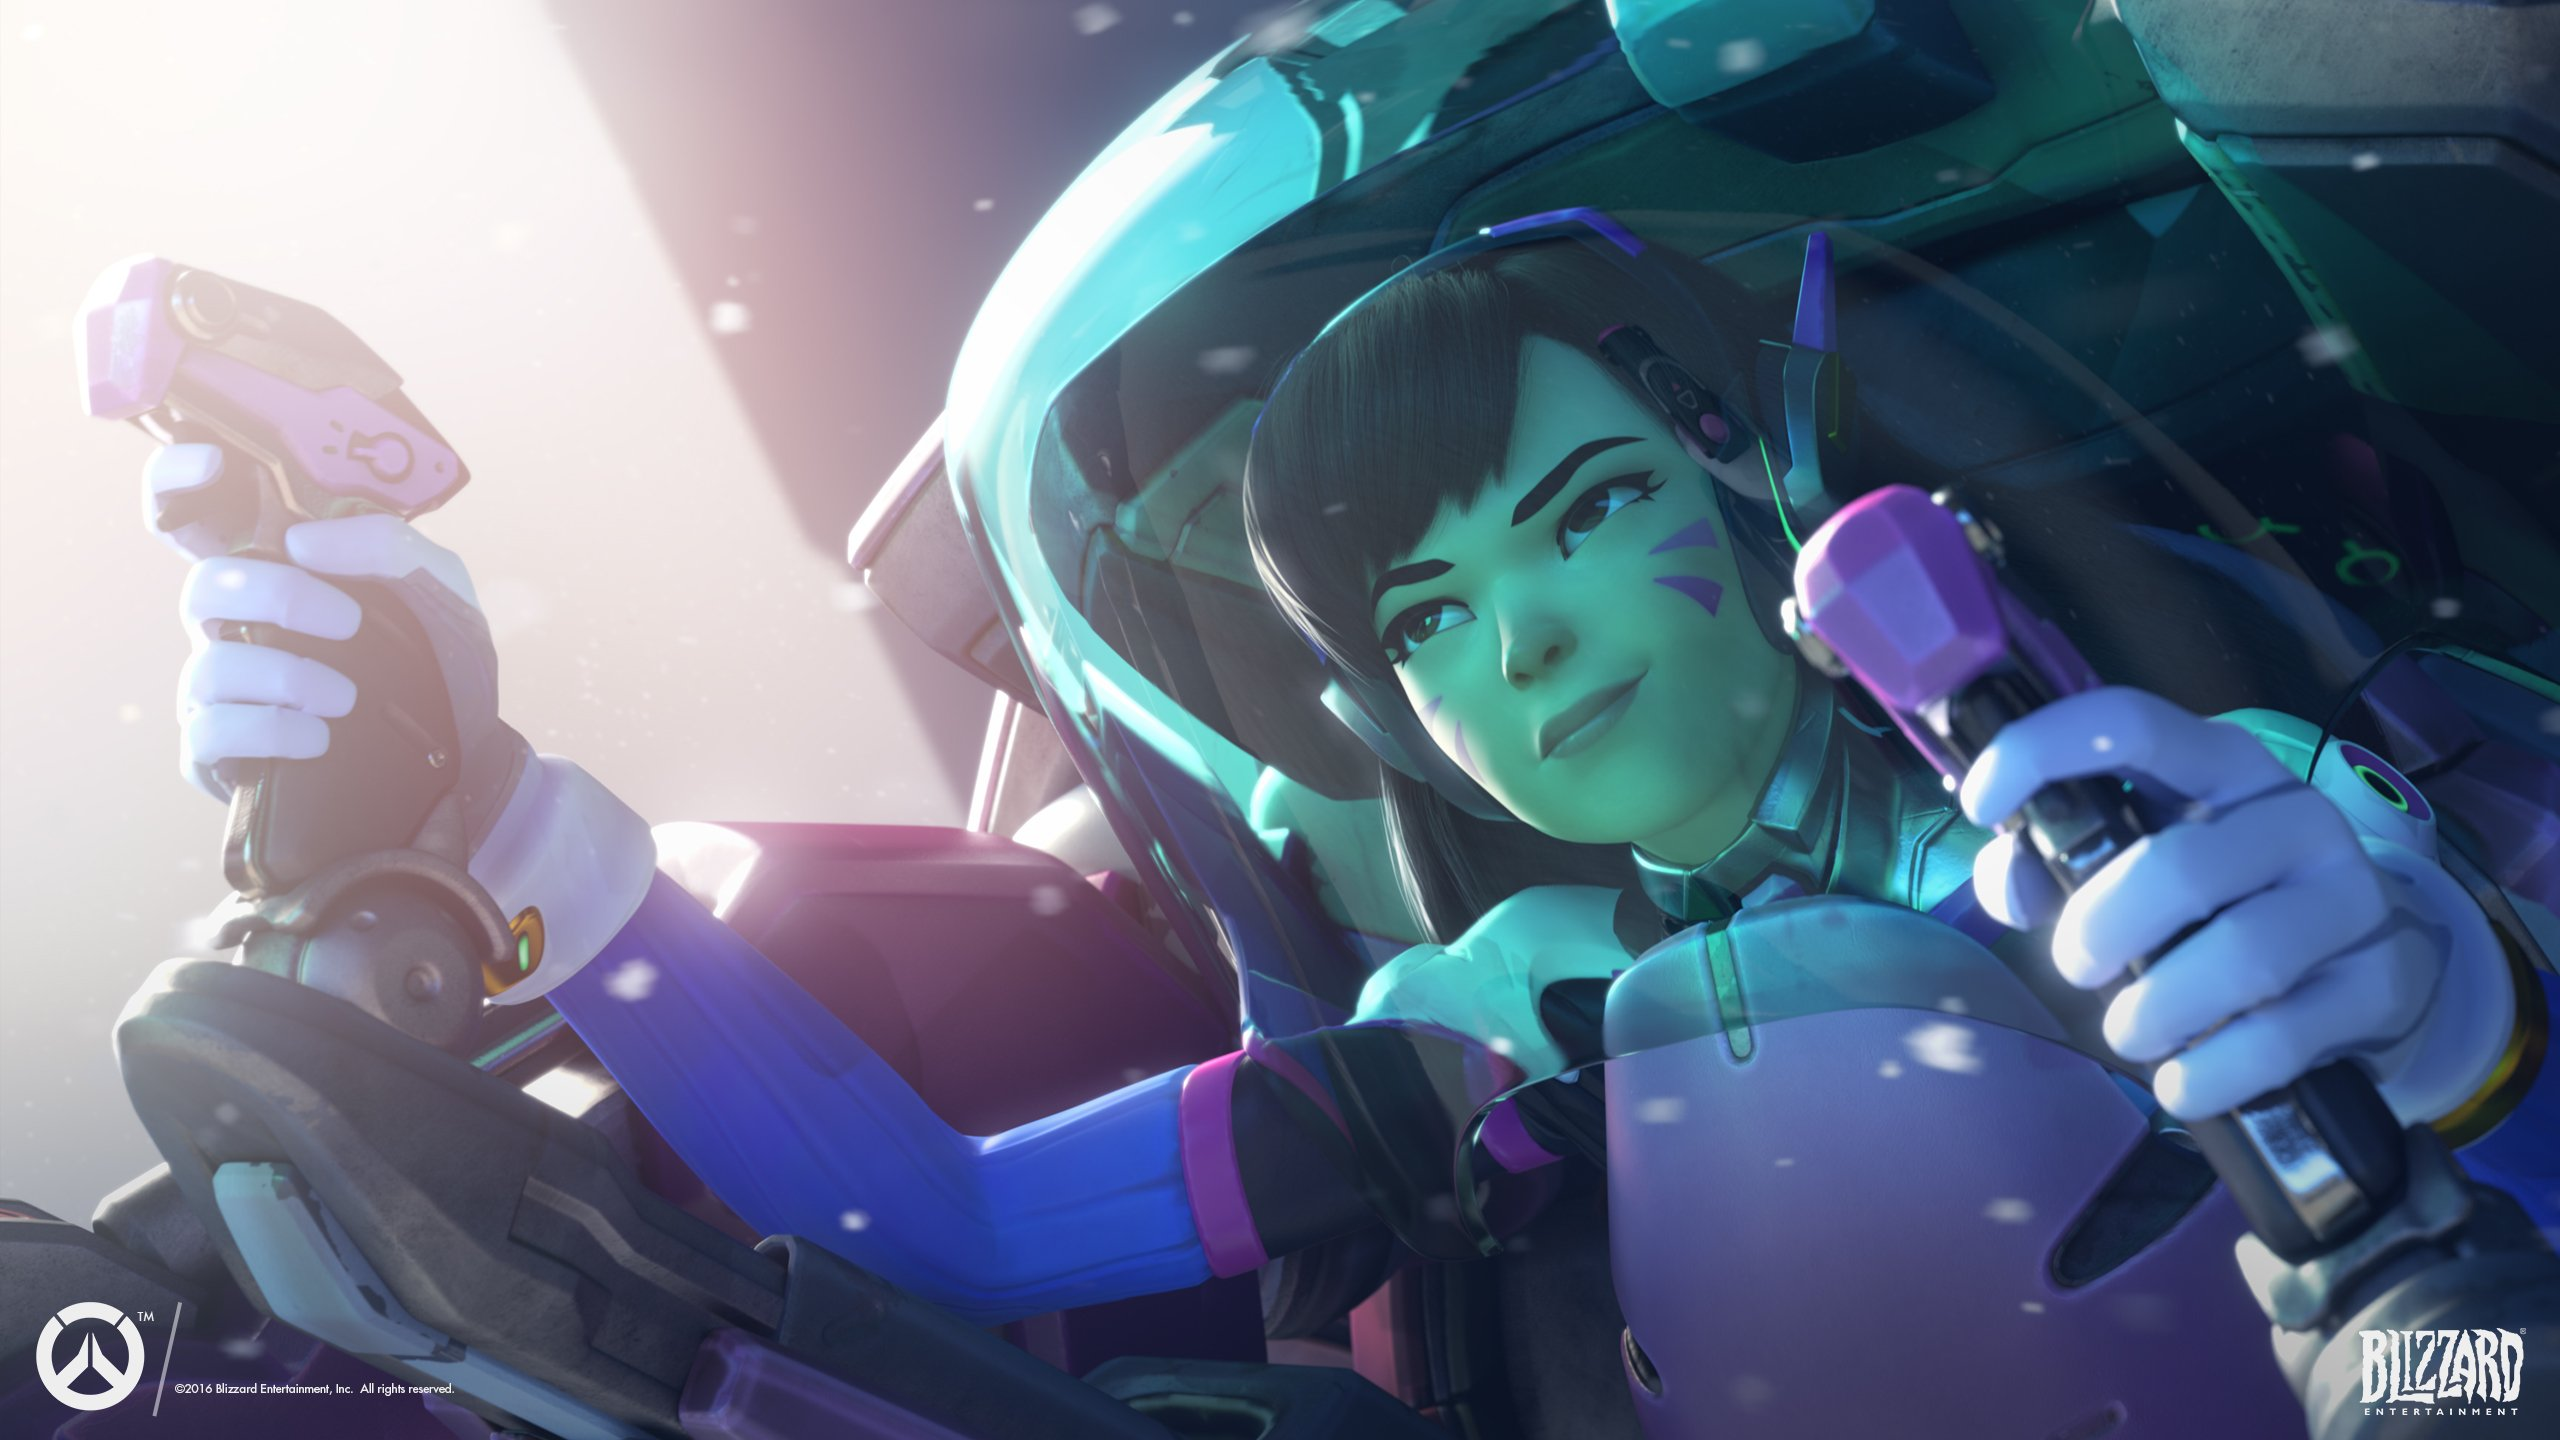 Overwatchs Dva The Gamer Girl We Deserve The Mary Sue